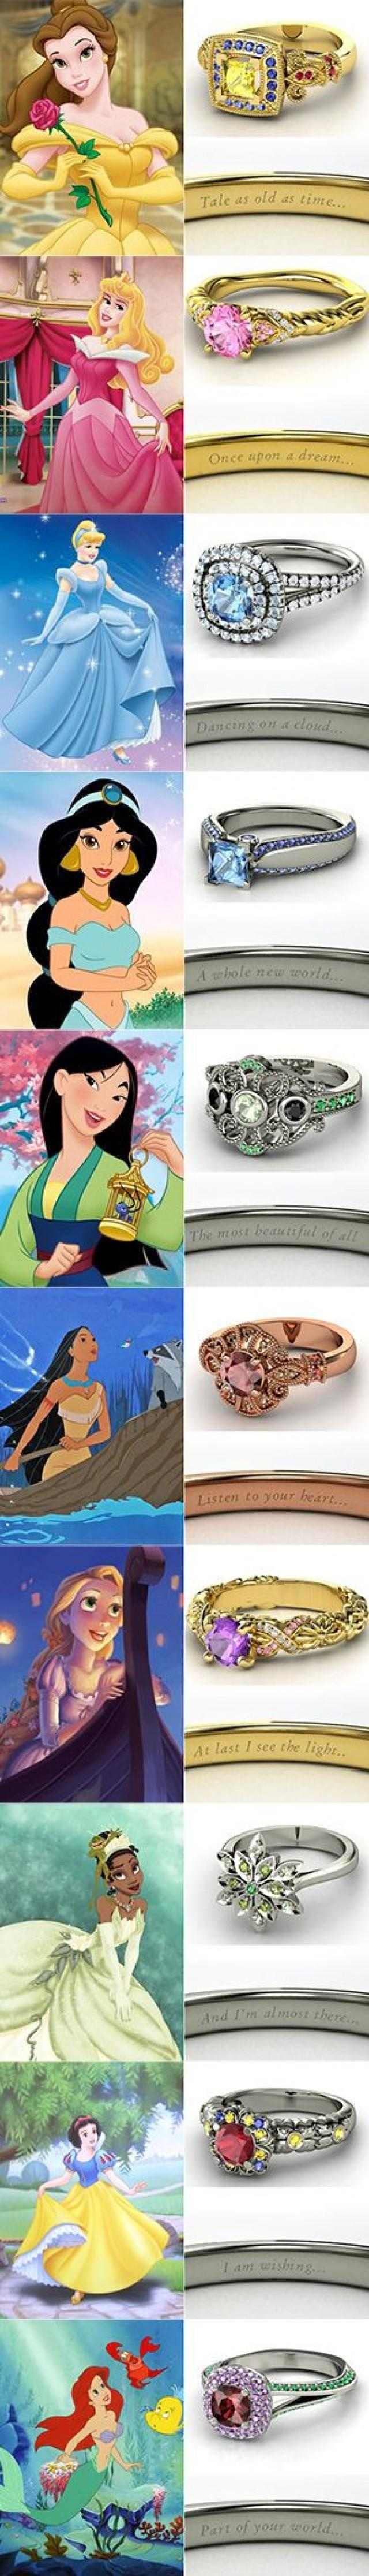 How to Plan a Proposal at Disney World  Disneys Fairy